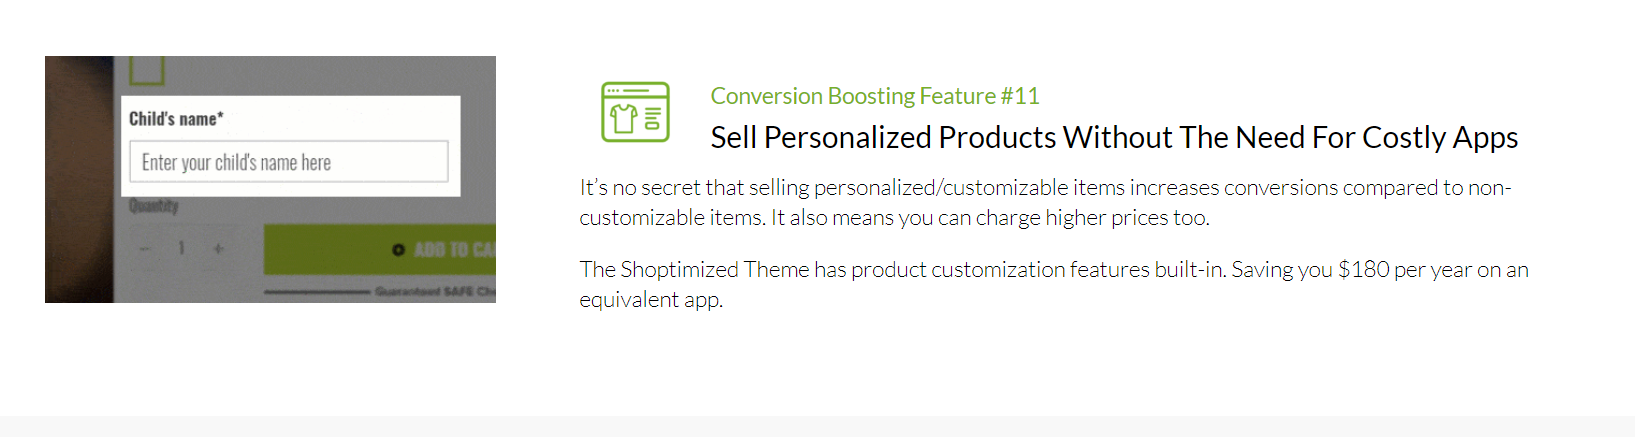 Shoptimized - Sell Personalized